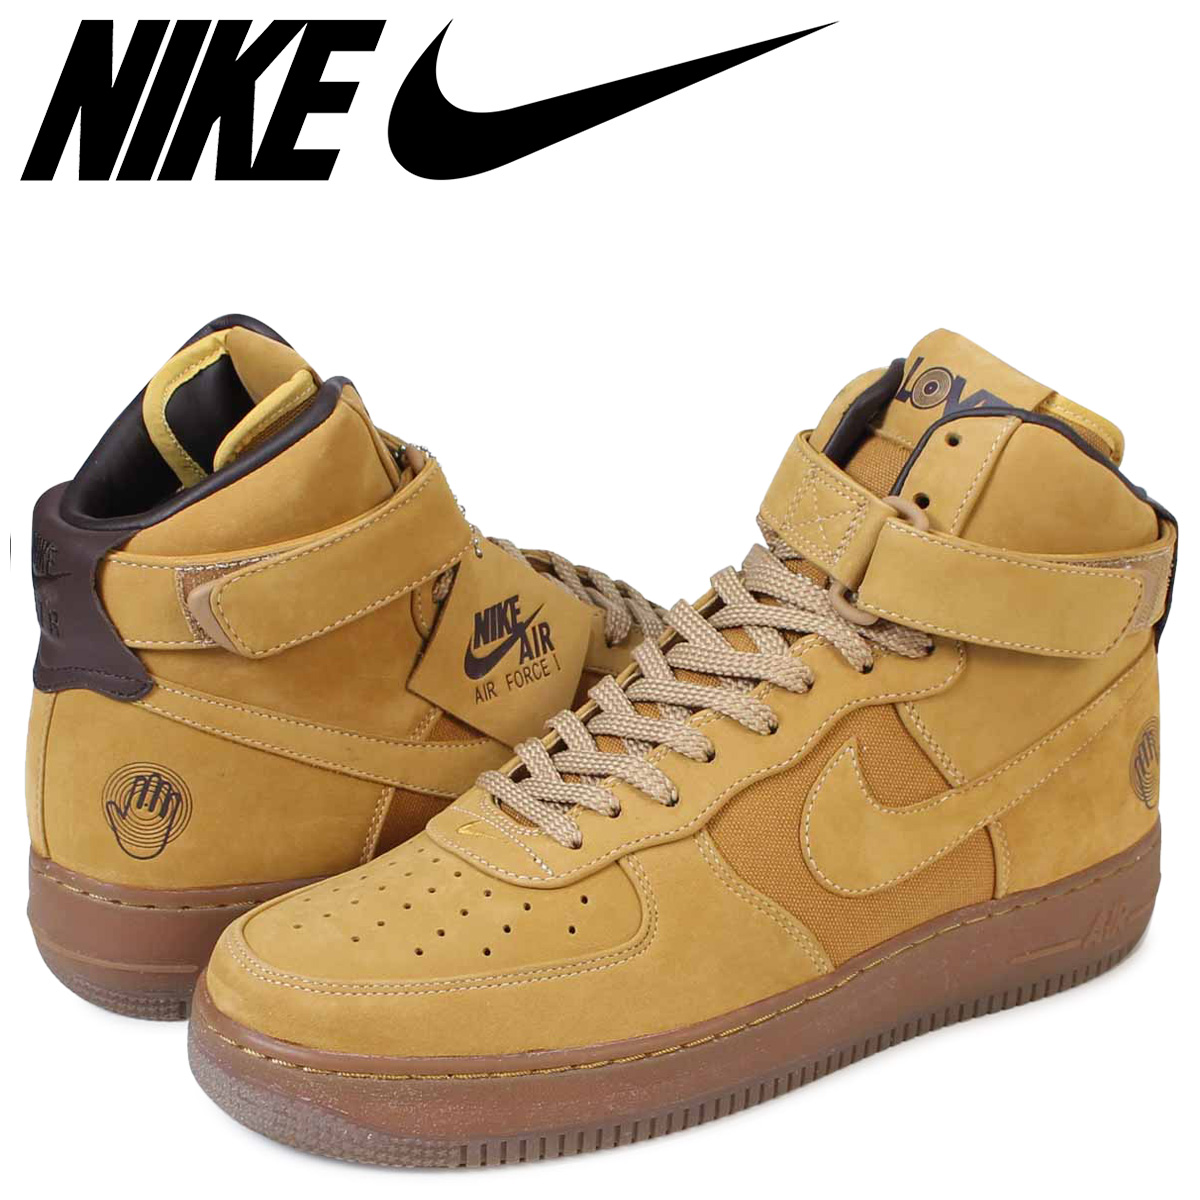 NIKE Nike air force 1 sneakers AIR FORCE 1 HIGH PREMIUM 318,431-771 low men  shoes brown